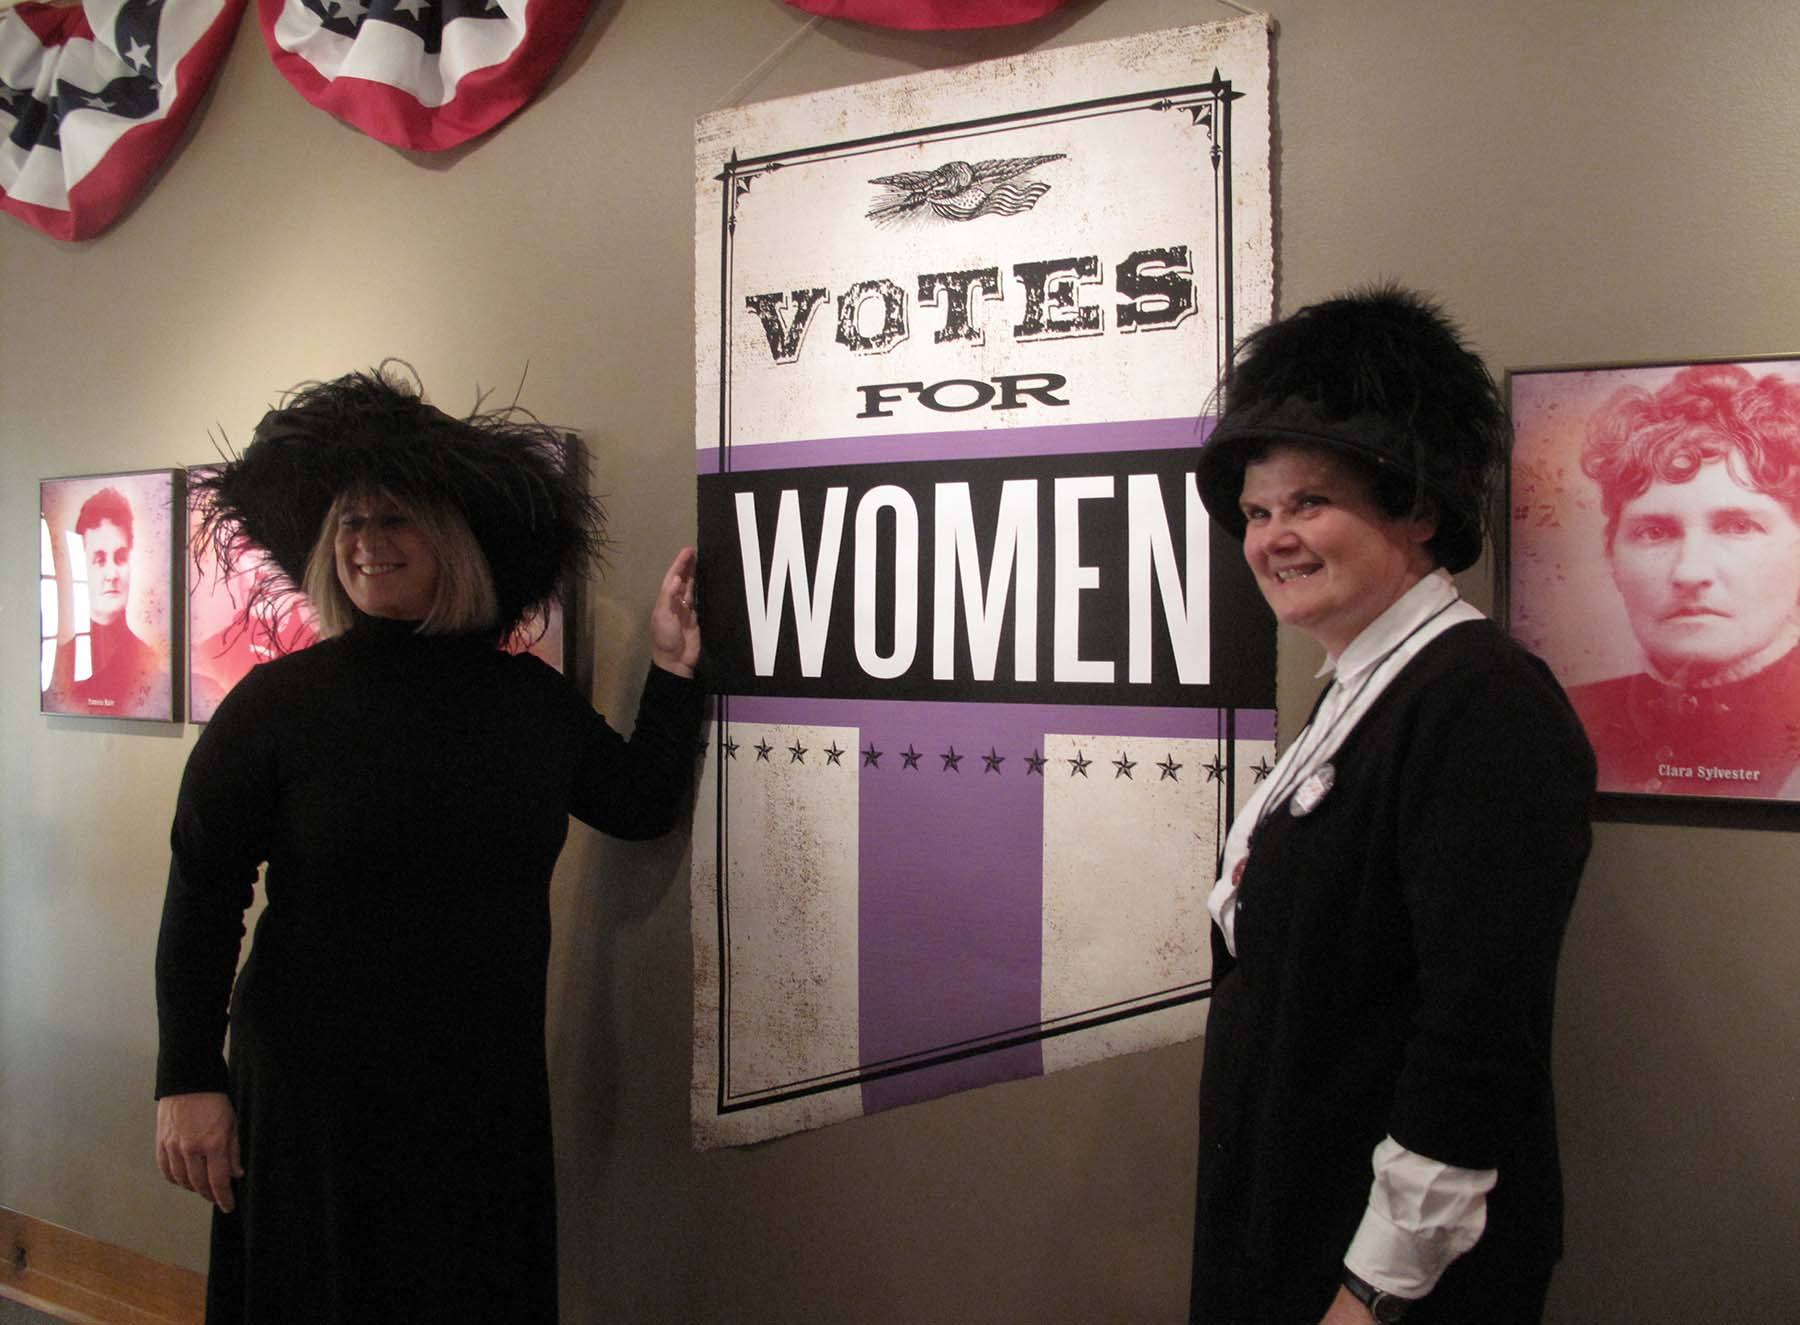 women vote uk